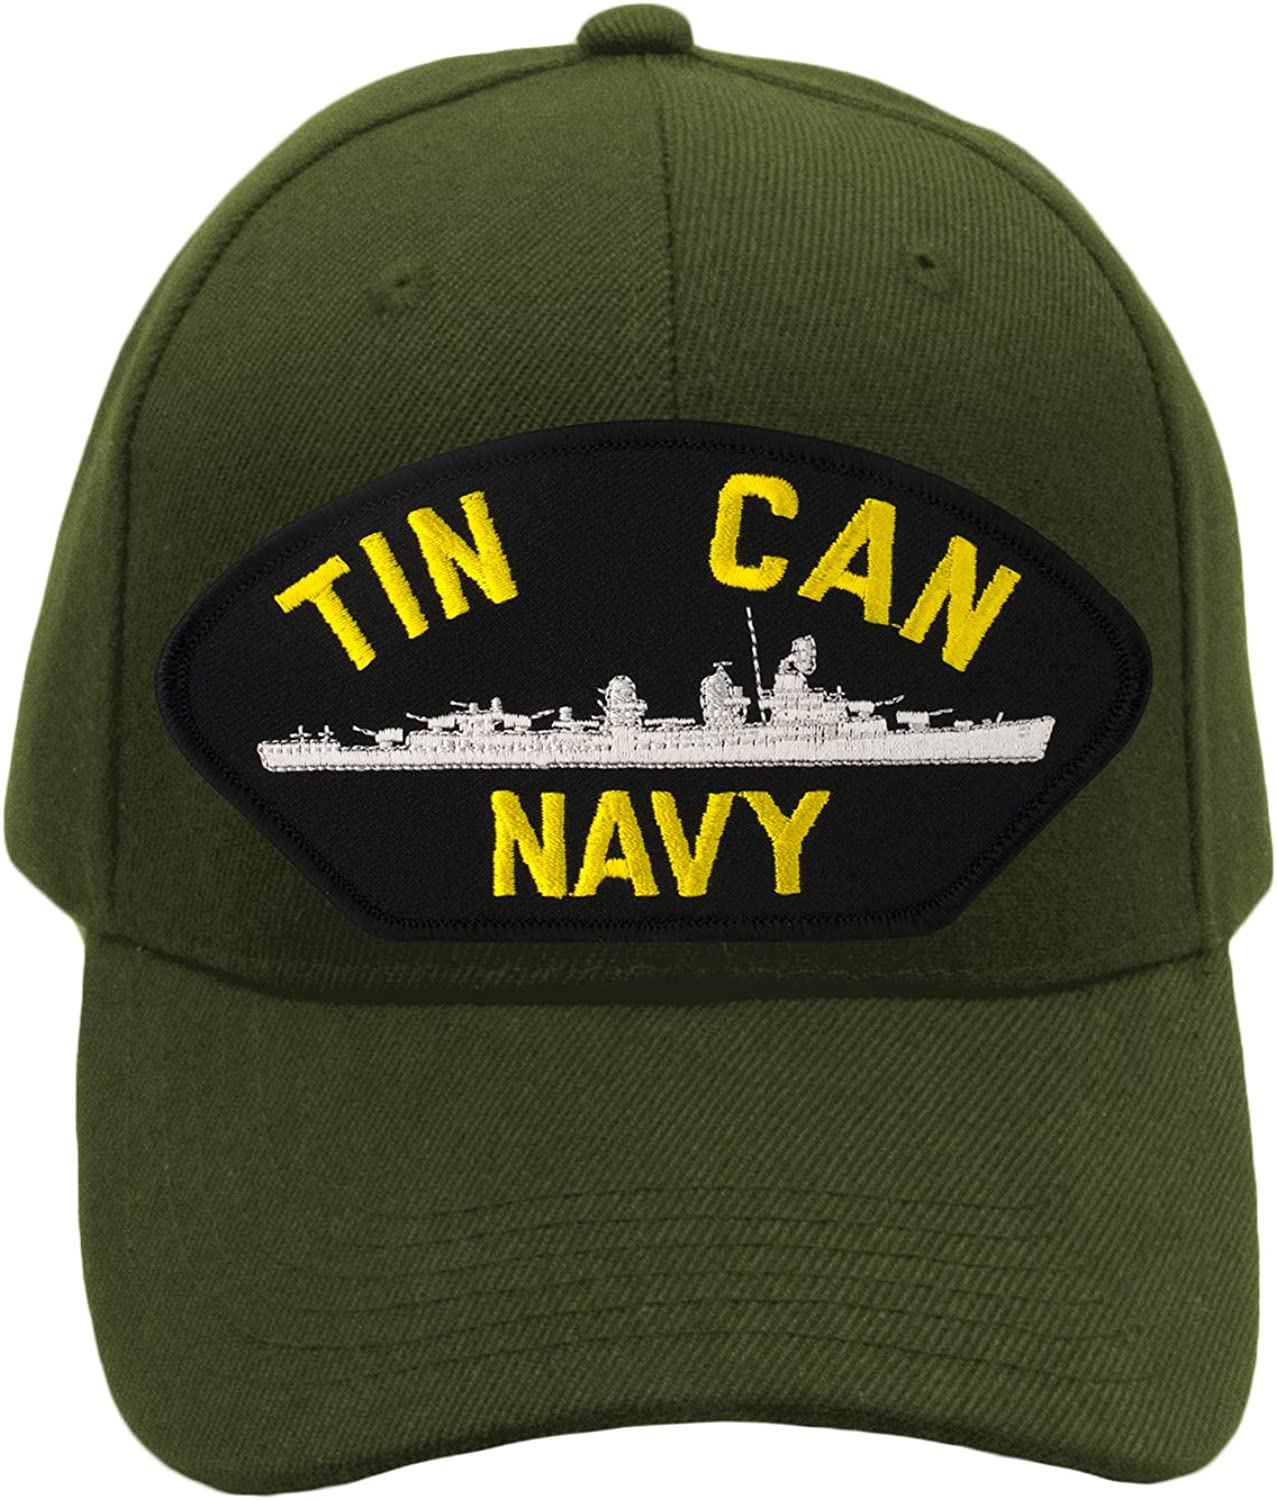 PATCHTOWN Tin Can Navy Hat//Ballcap Adjustable One Size Fits Most